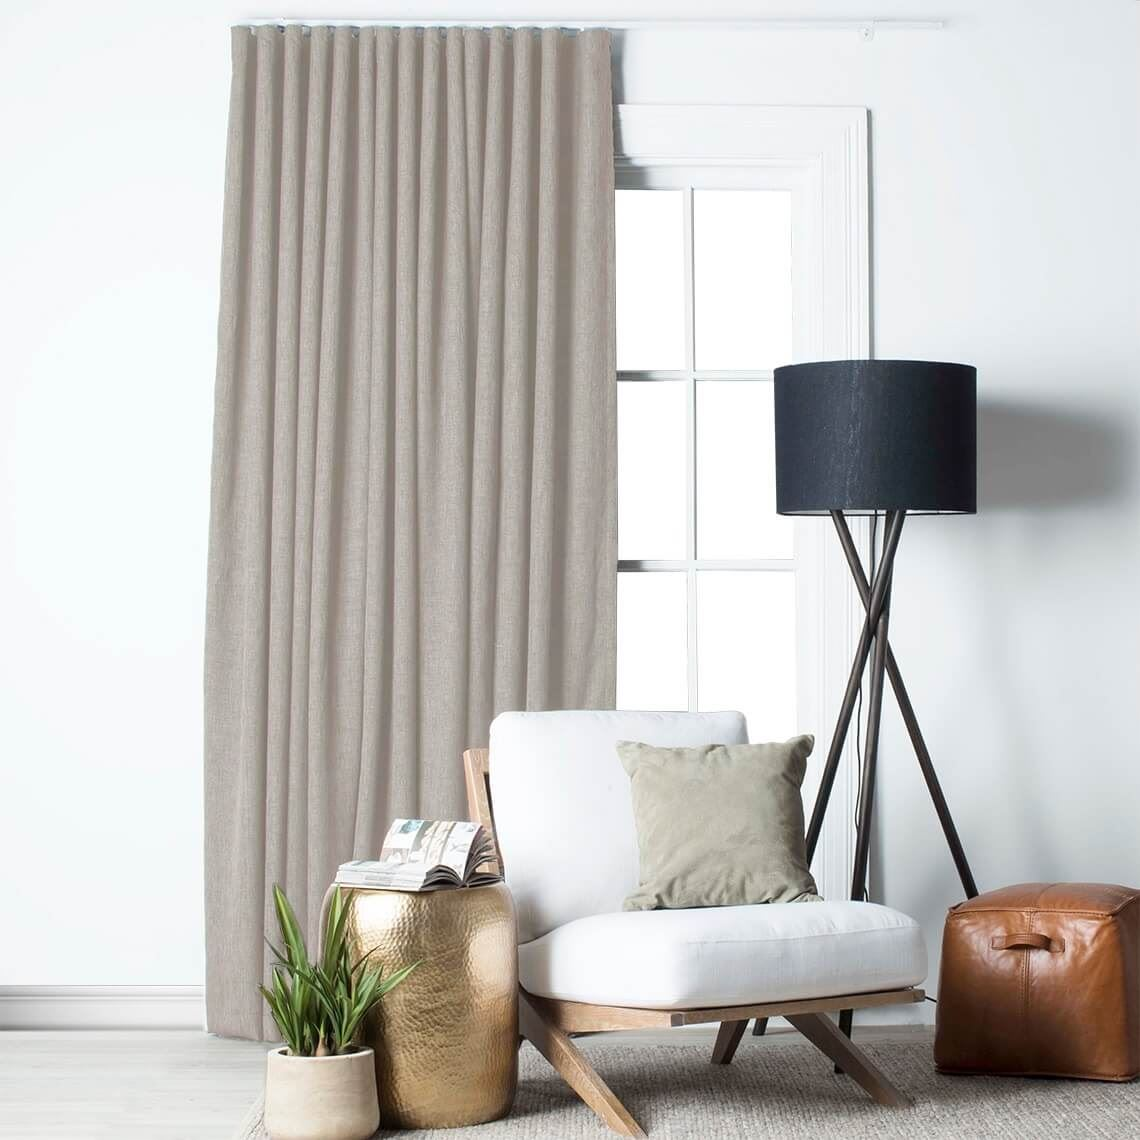 Lyndon Blockout S Fold Curtain Size W 360cm x D 1cm x H 280cm in Stone 100% Polyester Freedom by Freedom, a Curtains for sale on Style Sourcebook